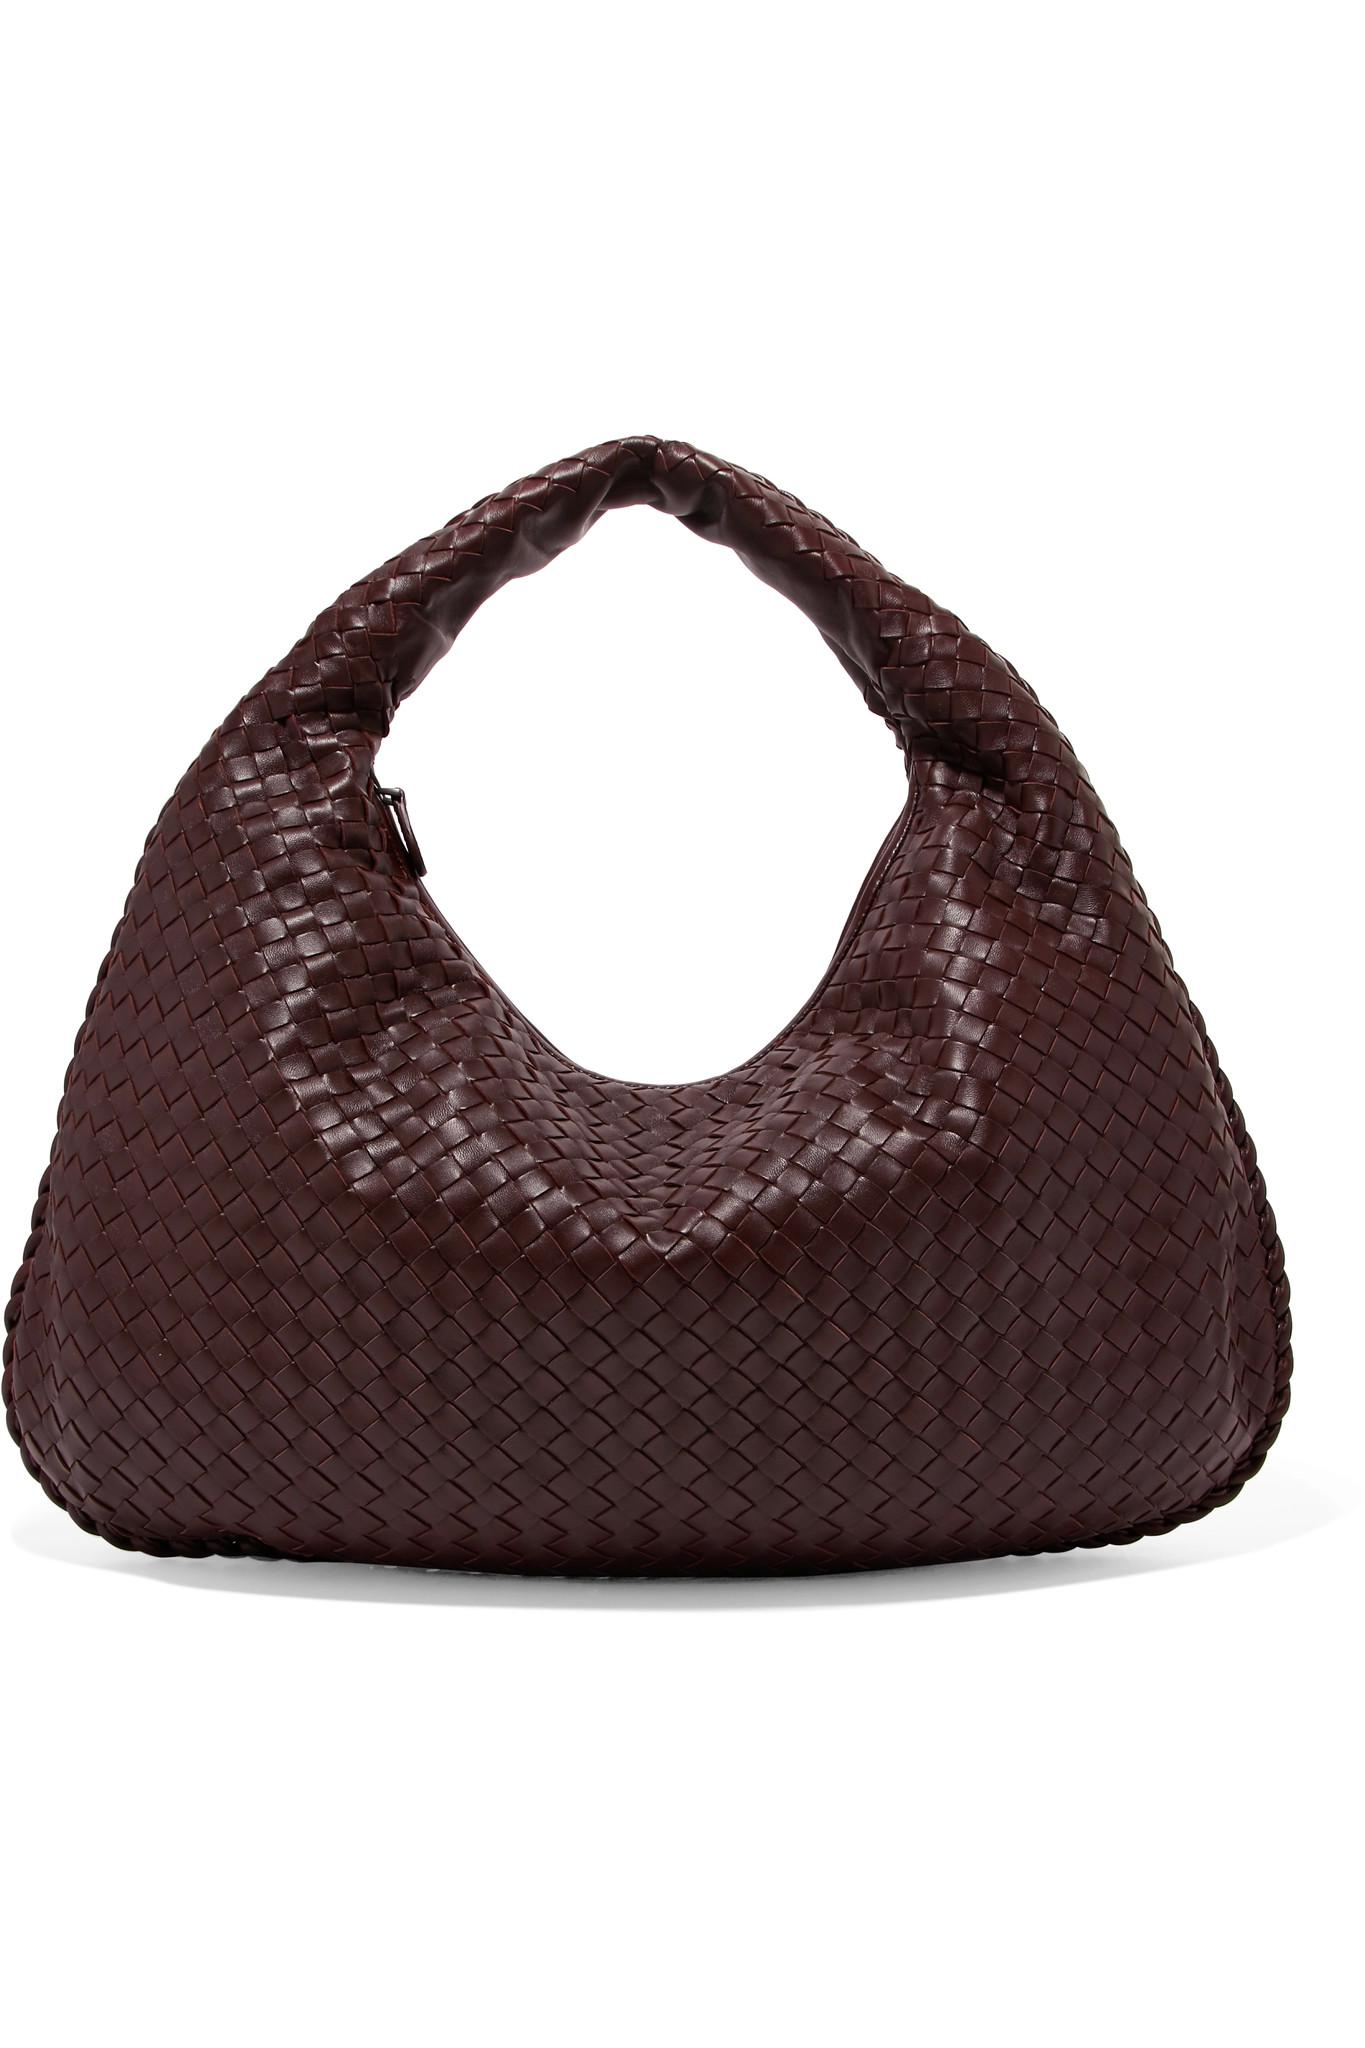 533bc2f31bc2 Bottega Veneta Hobo Large Intrecciato Leather Shoulder Bag in Brown ...